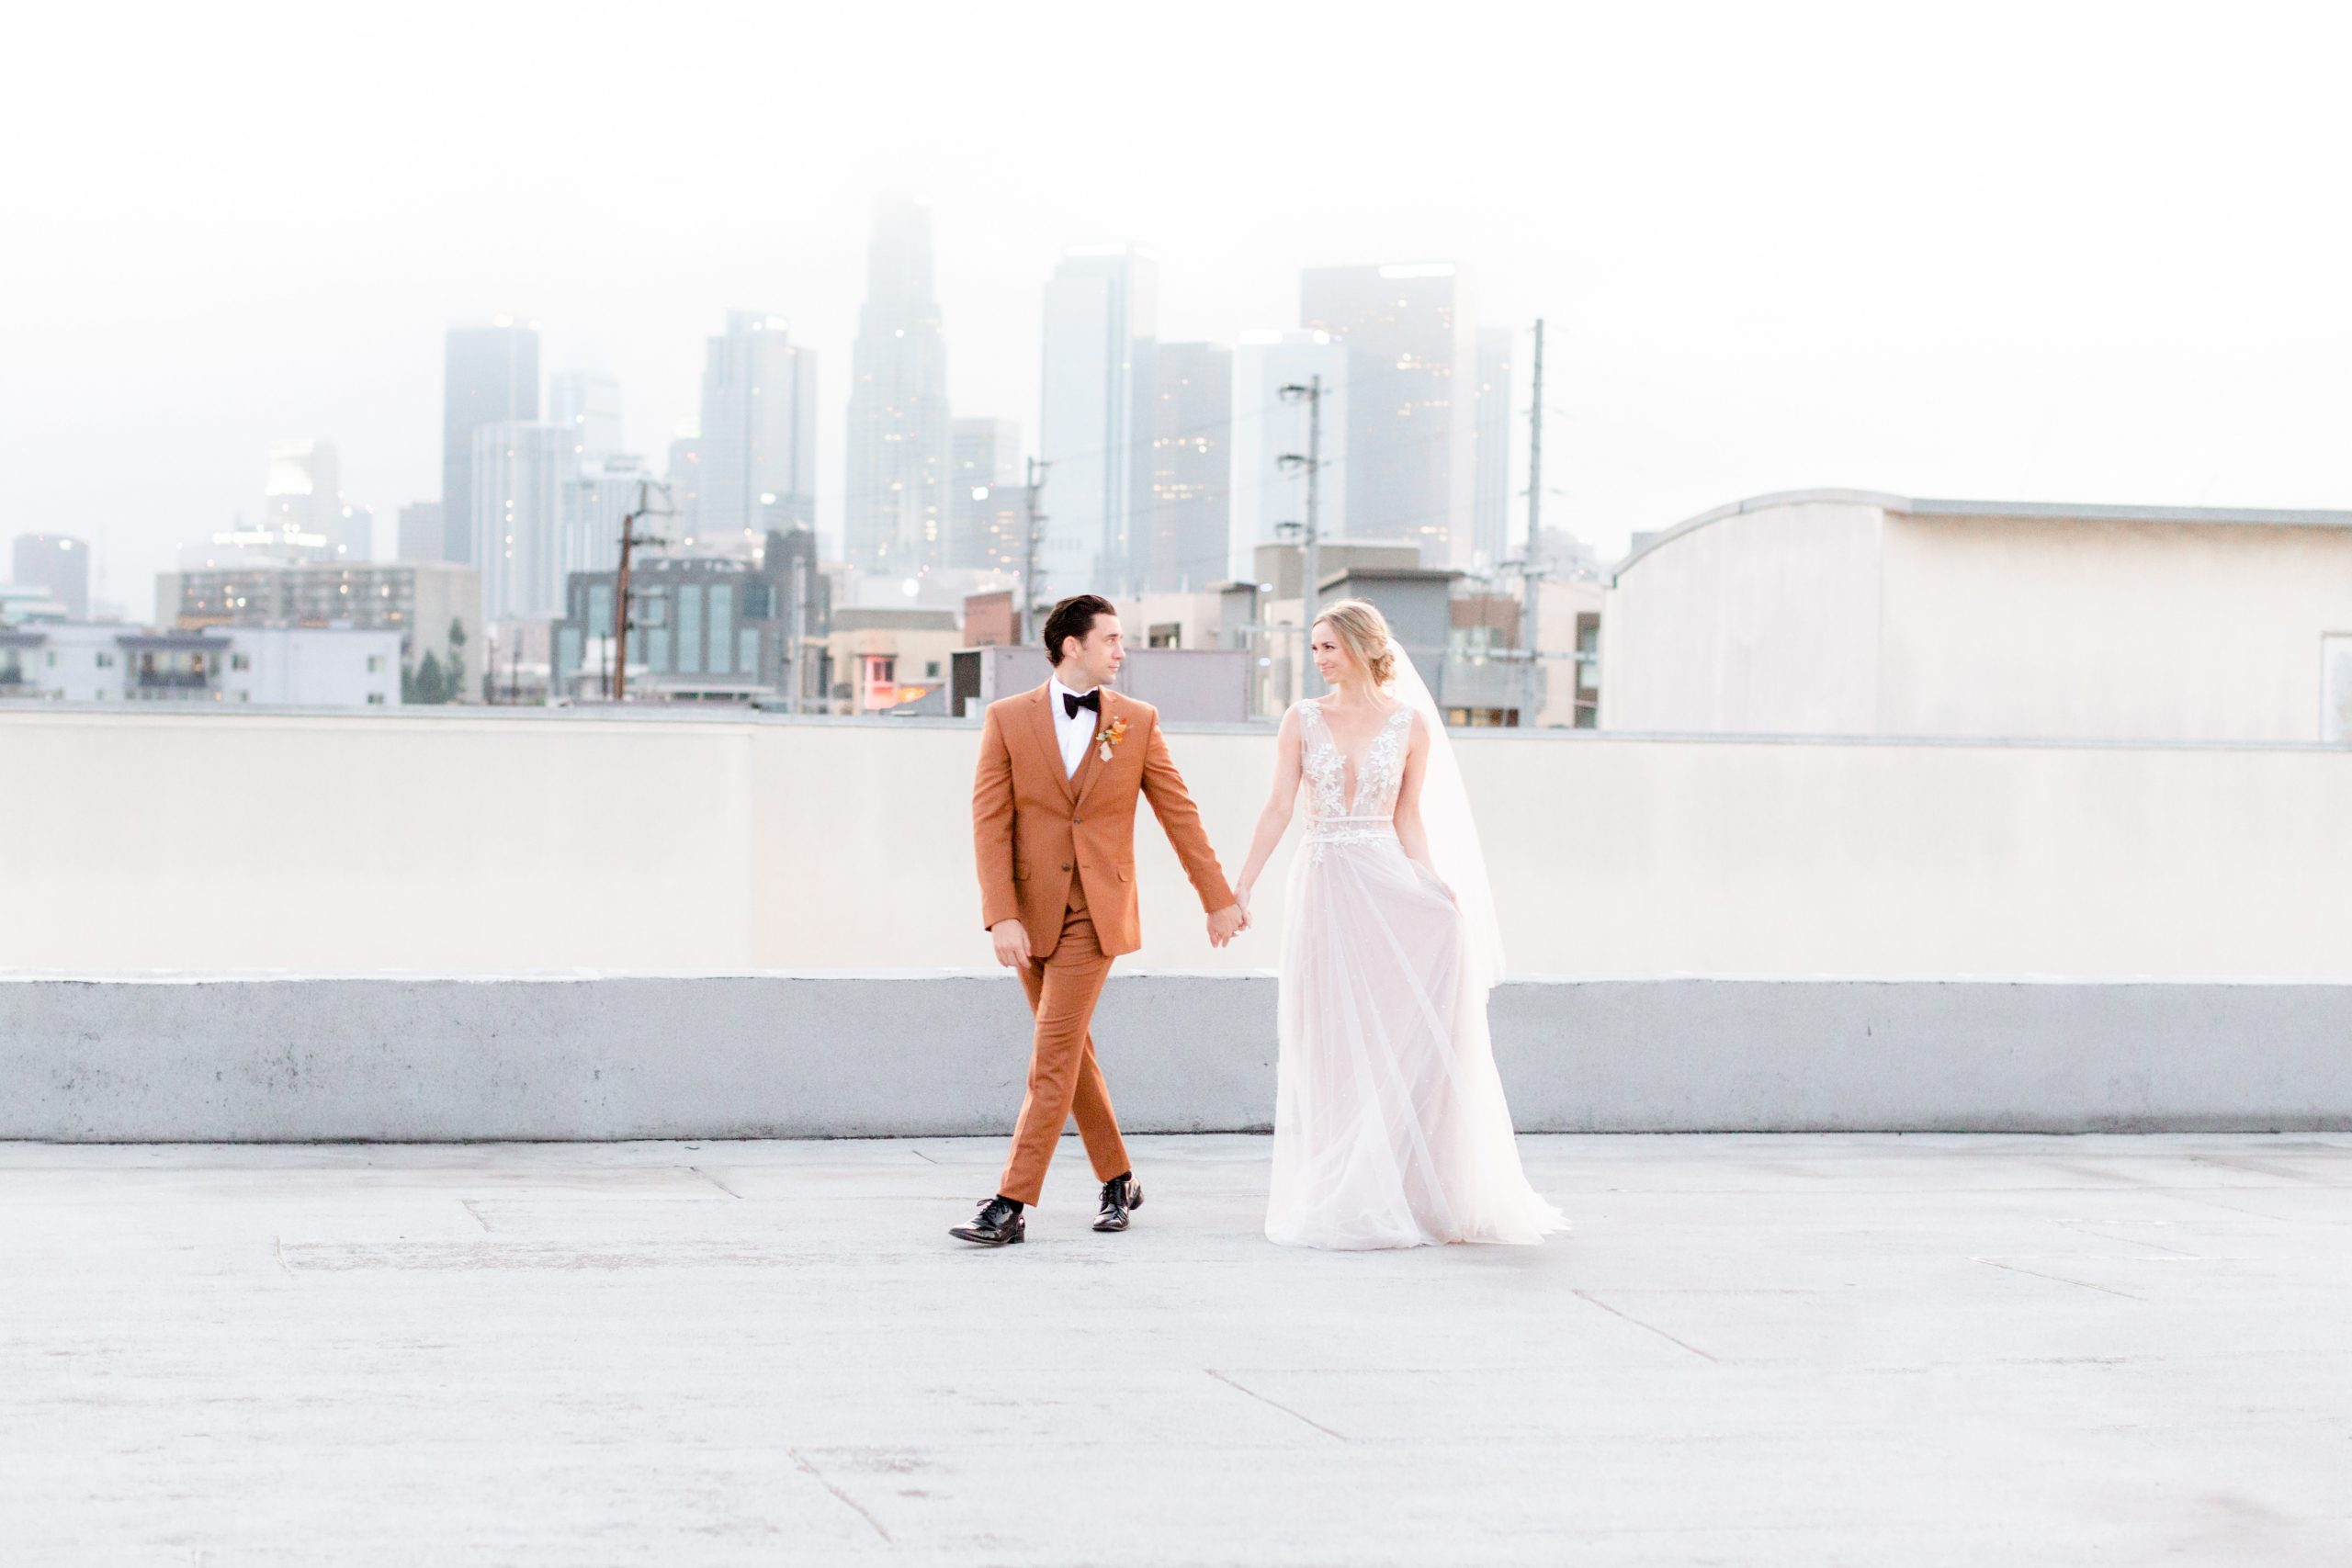 Rooftop Romance Planned & Designed by Bowties & Bouquets